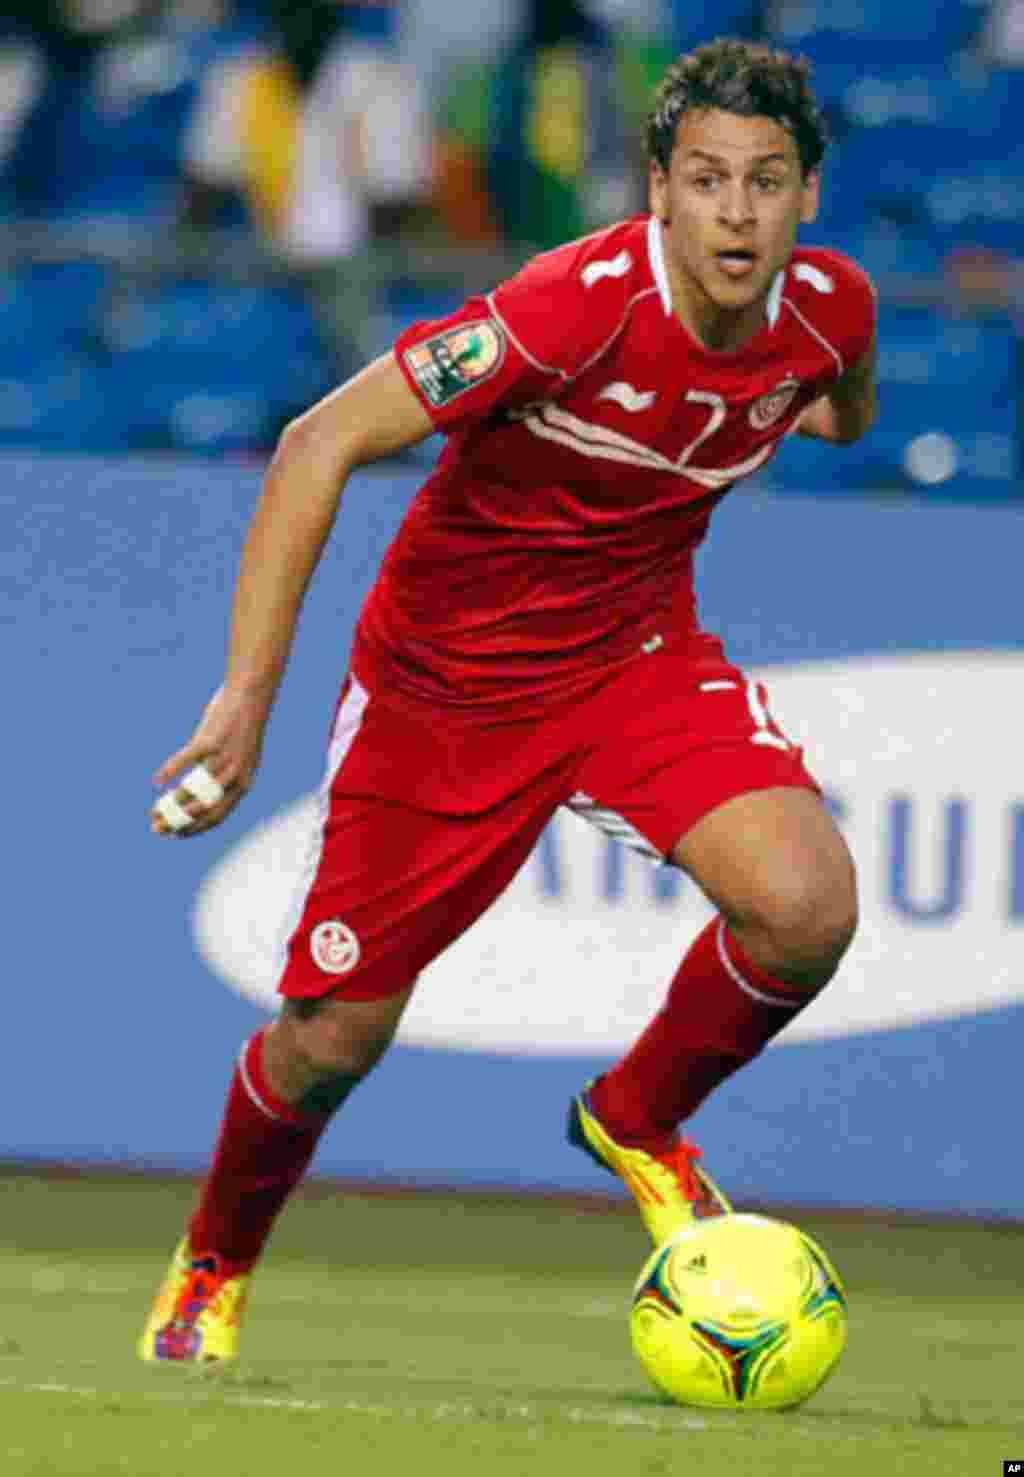 Tunisia's Msakni dribbles the ball during their African Cup of Nations soccer match against Niger in Libreville